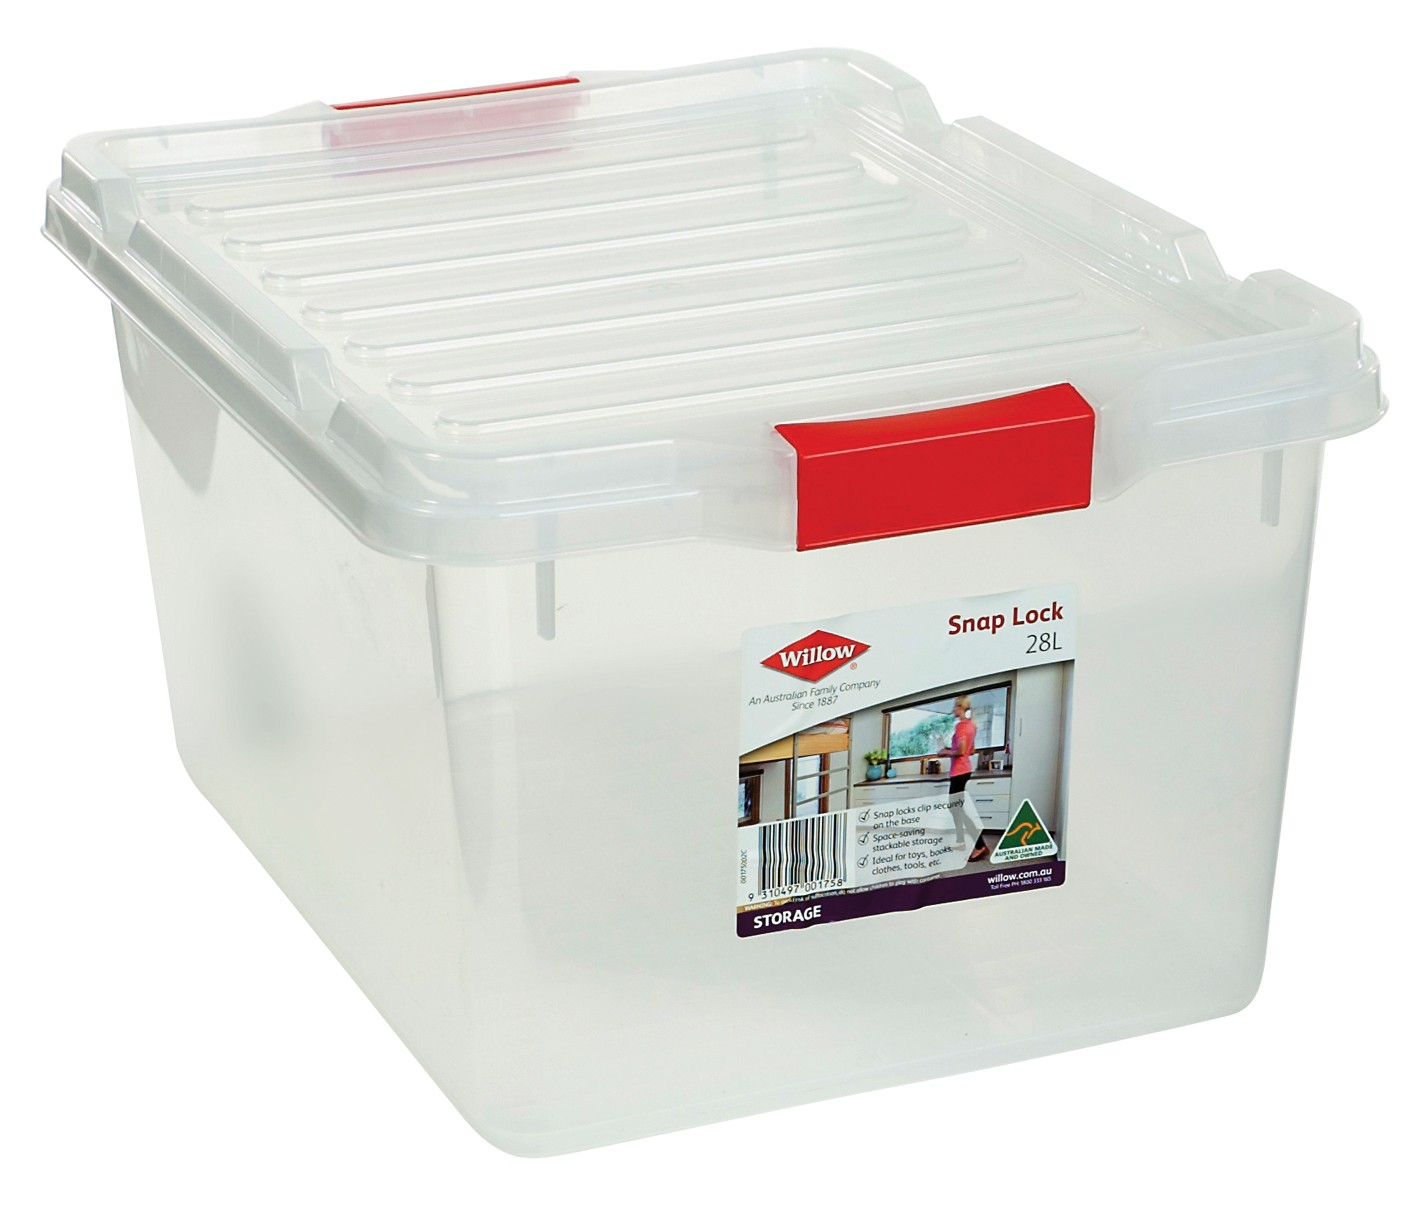 Willow Storage Box 28L Snap Lock Lid from Storage Box